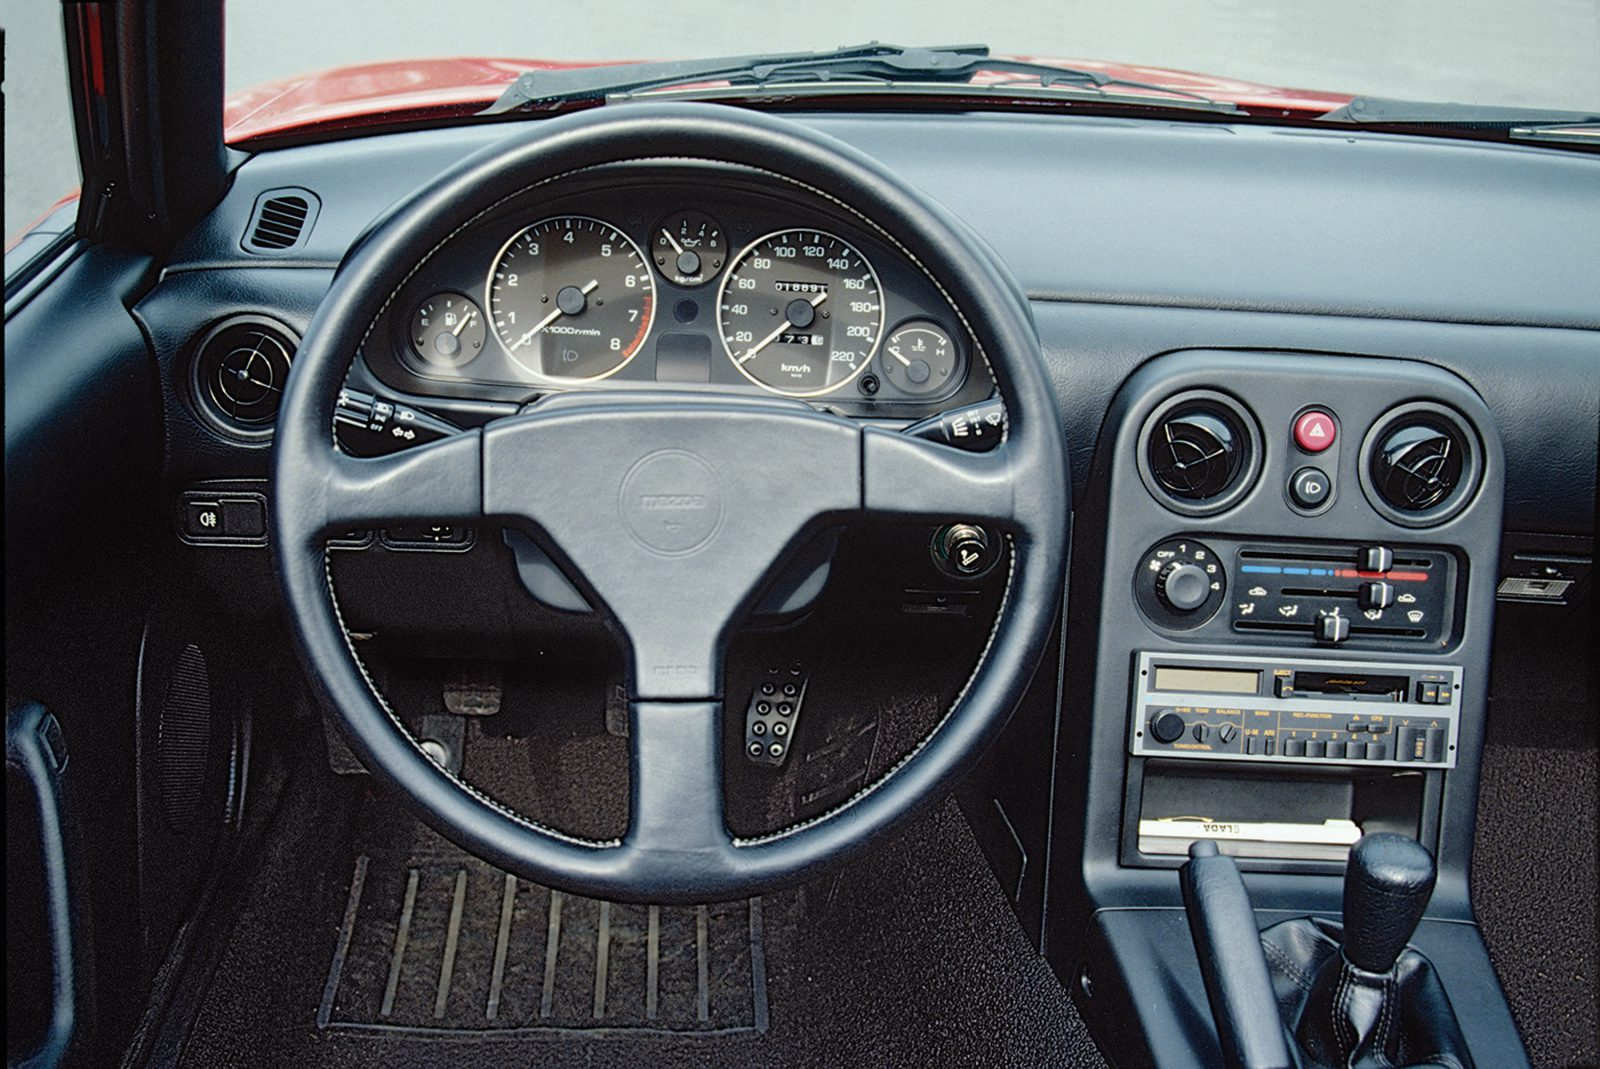 Mazda MX-5 interieur